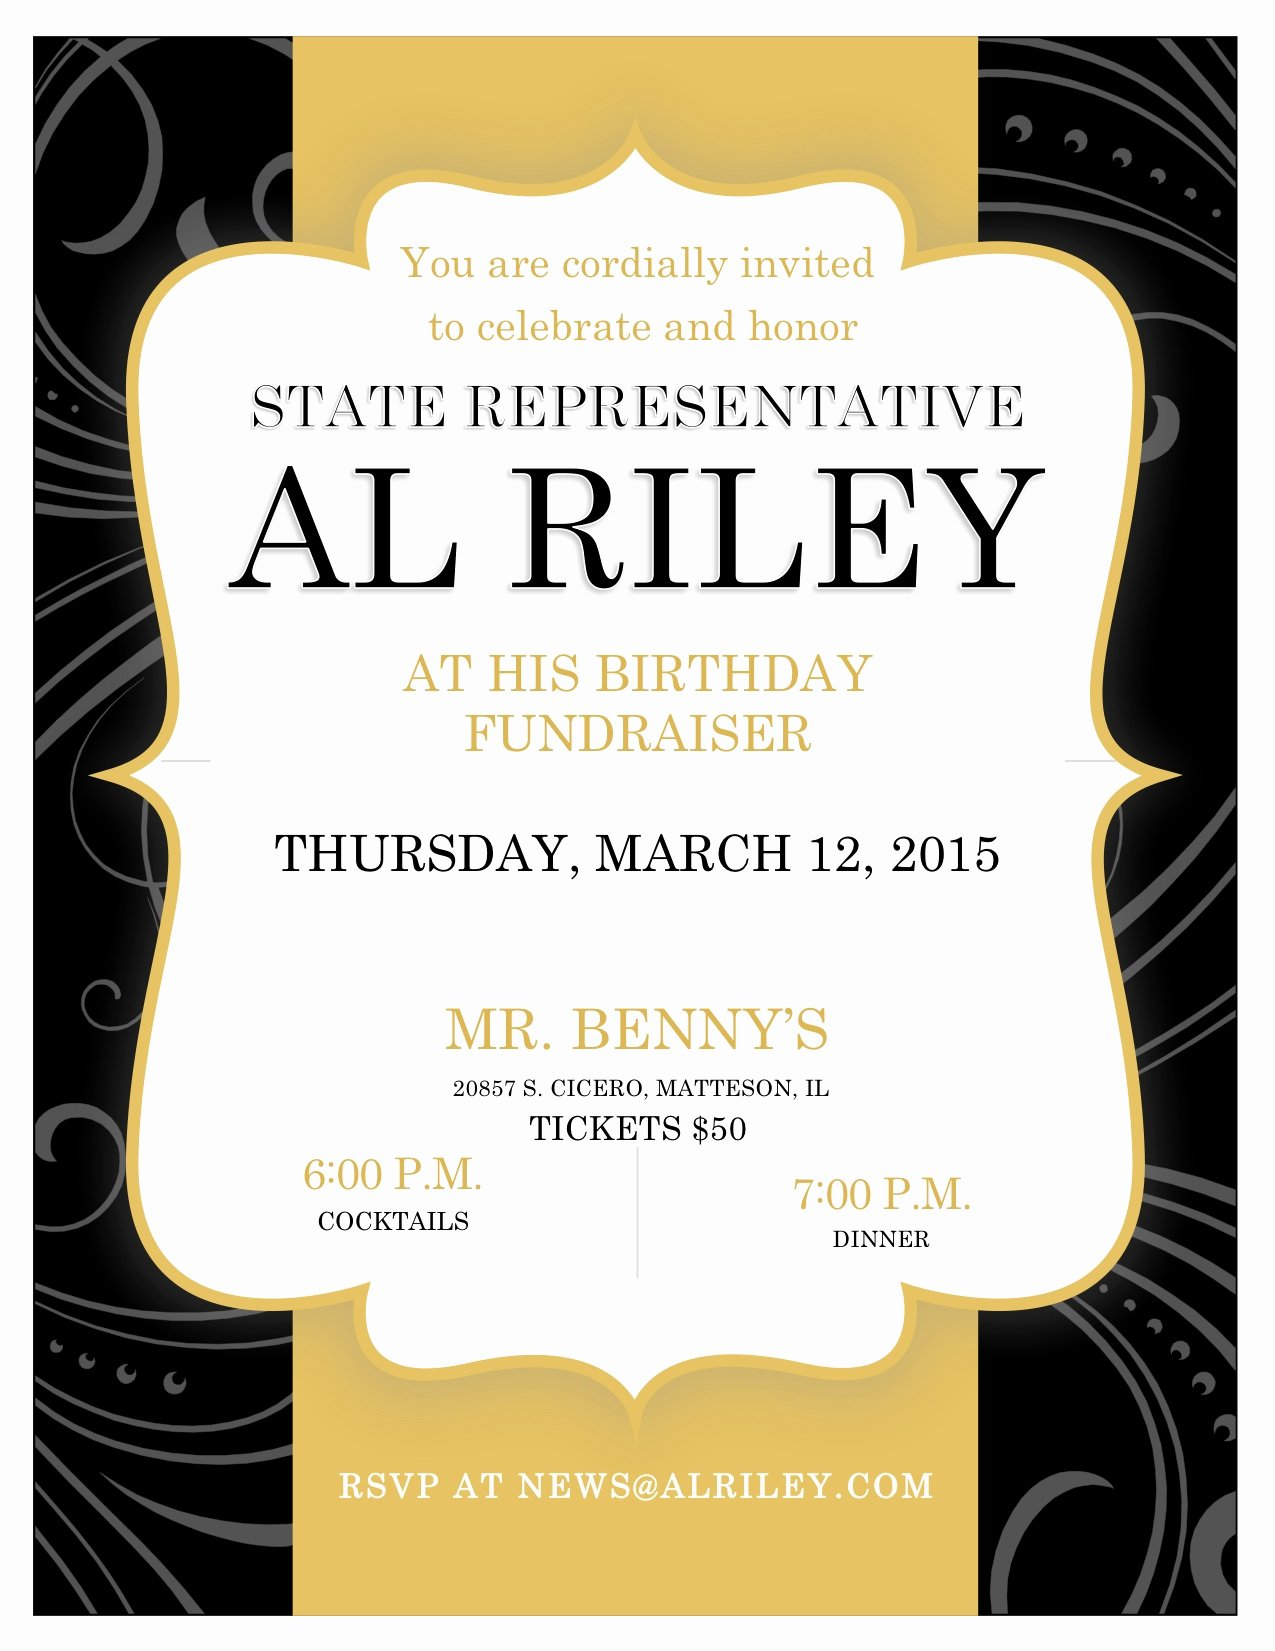 You are Cordially Invited Template Inspirational You are Cordially Invited for Dinner Christopherbathum